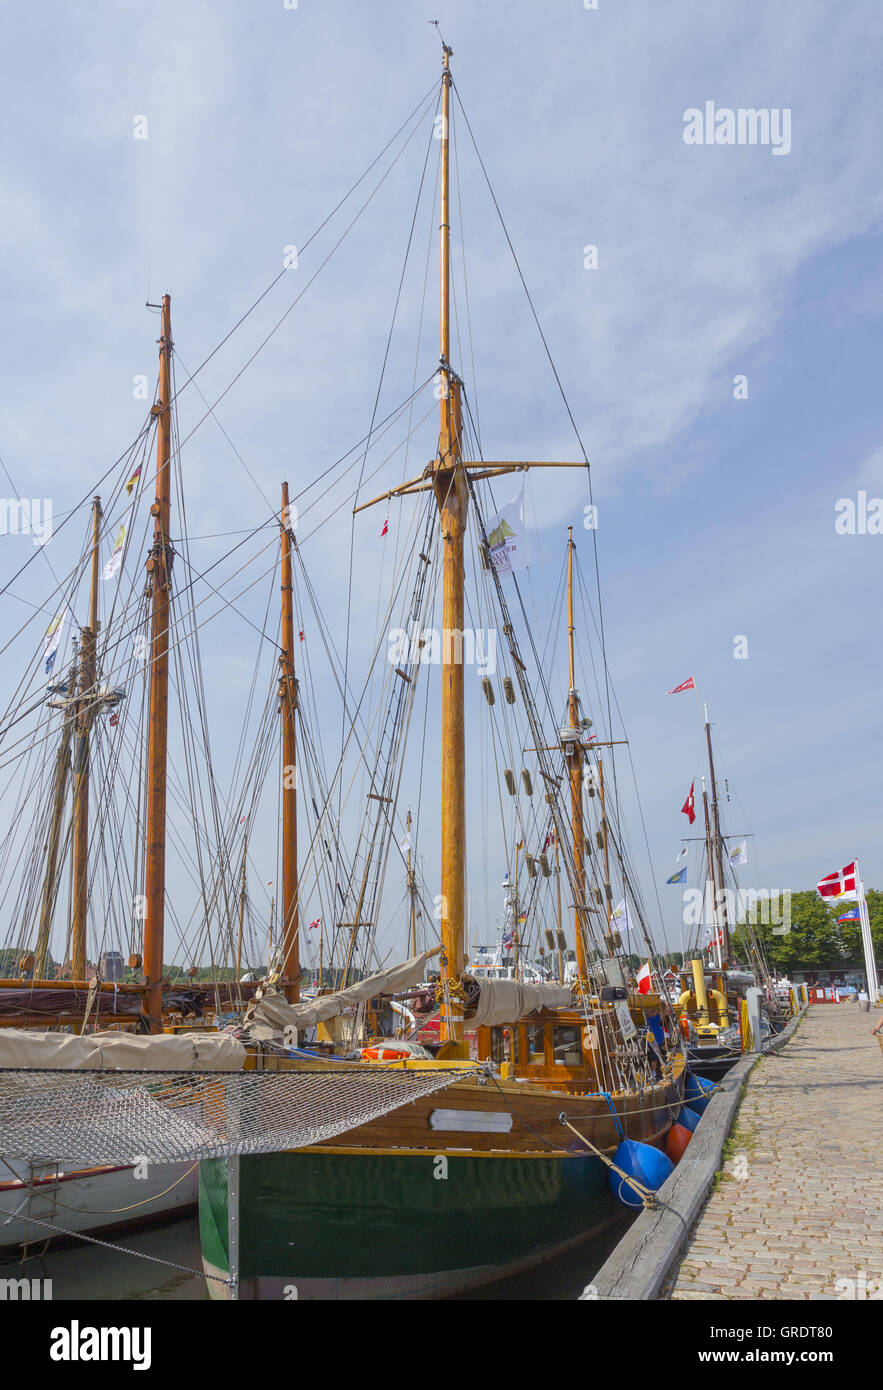 Historic Sailing Ships In The Port Of Nystedt Lolland Denmark - Stock Image